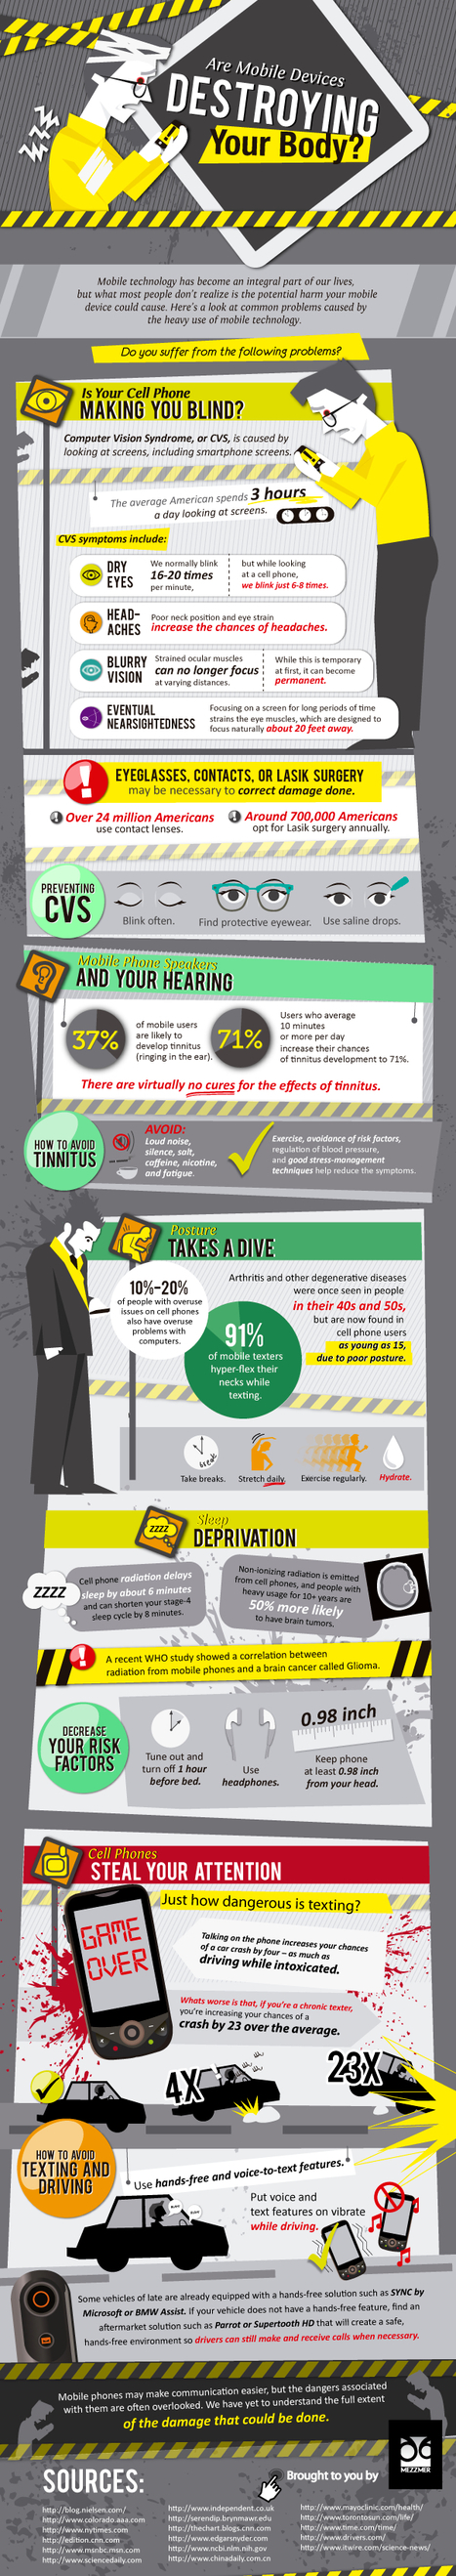 Are Mobile Devices Destroying Your Body? [INFOGRAPHIC ... | eLearning tools | Scoop.it